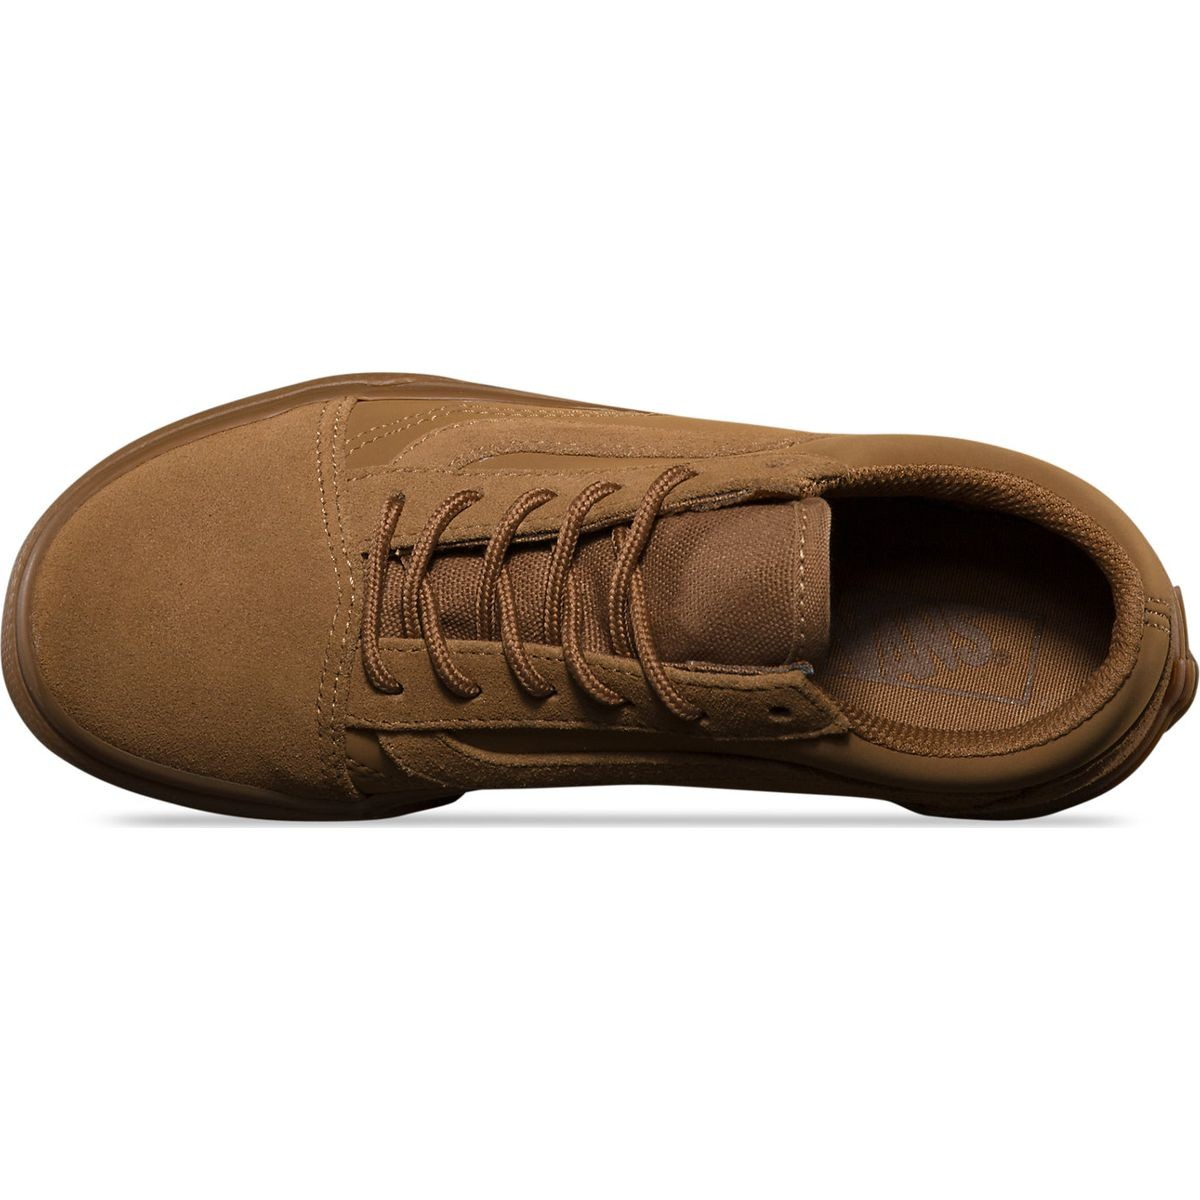 vans old skool suede buck youth shoes $ 15 98 $ 39 95 availability out